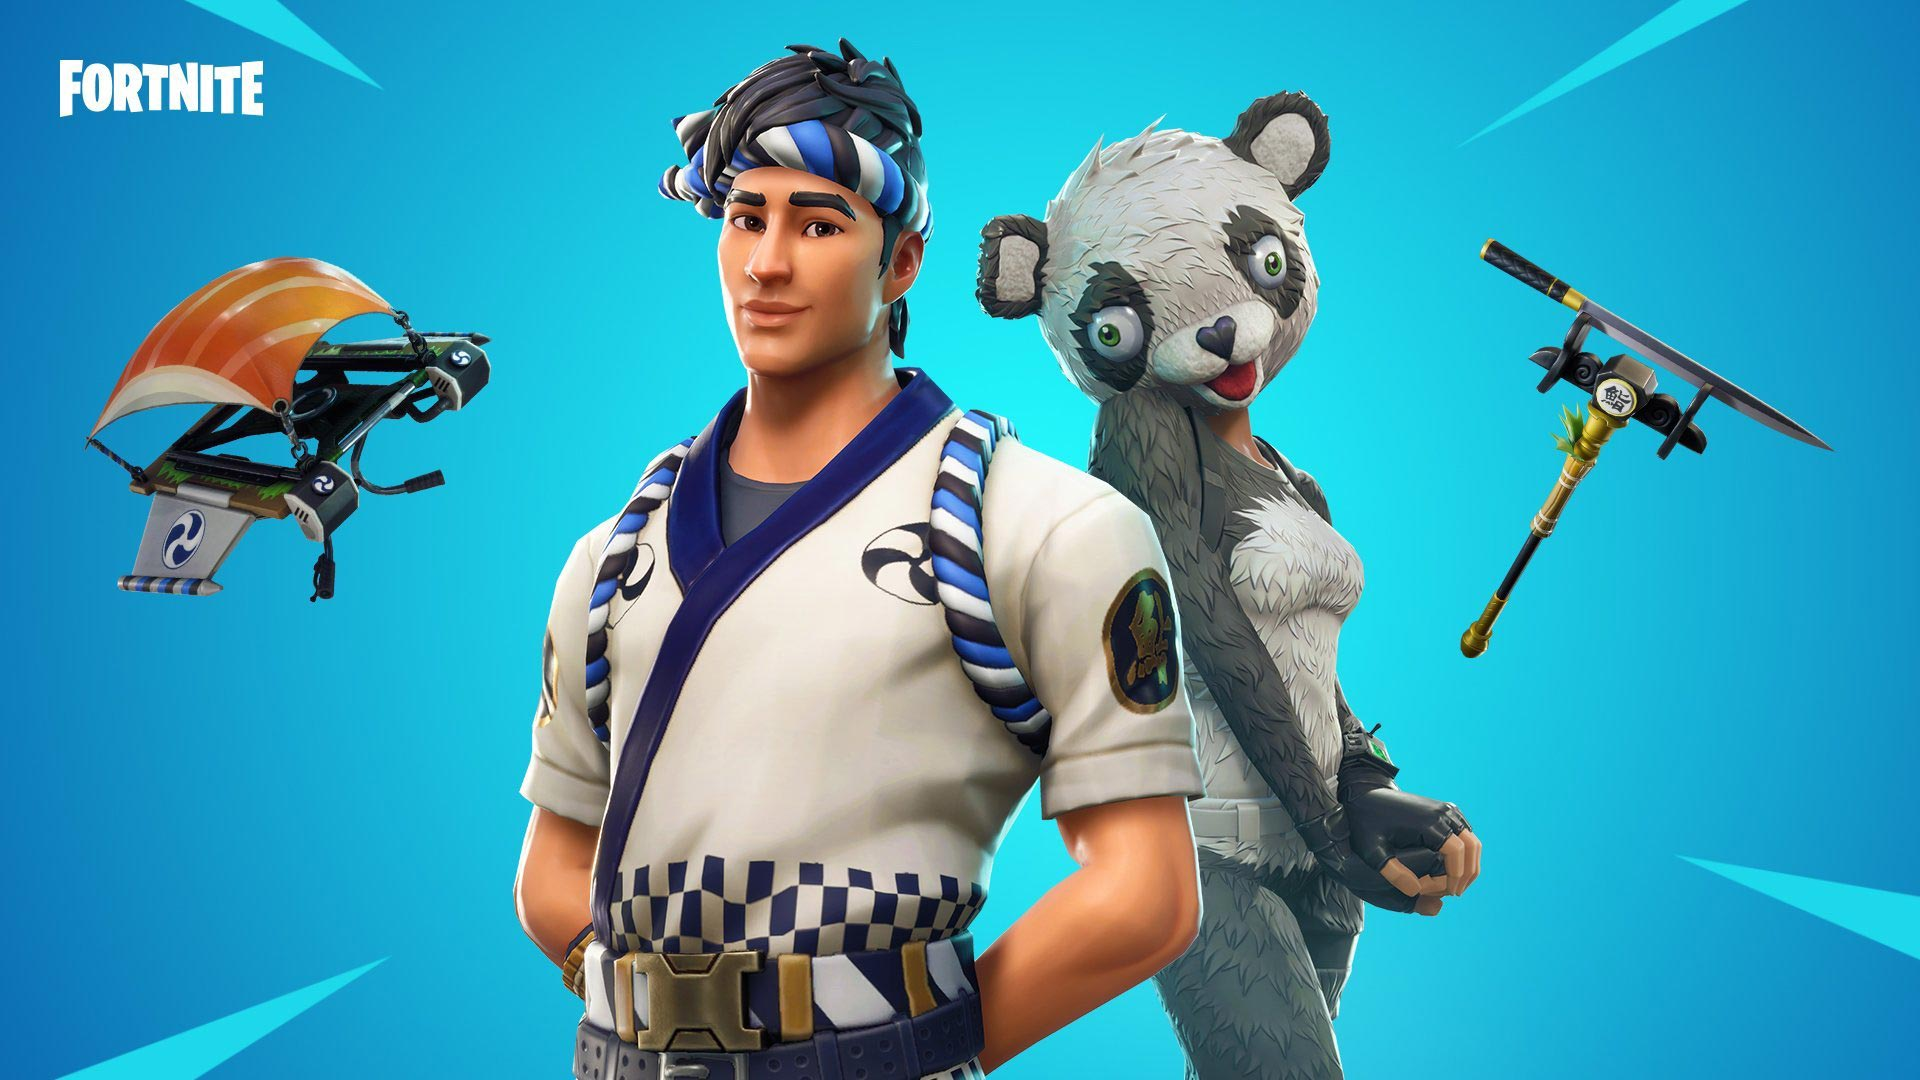 Fortnite wallpaper panda team leader skin - Fortnite save the world wallpaper ...